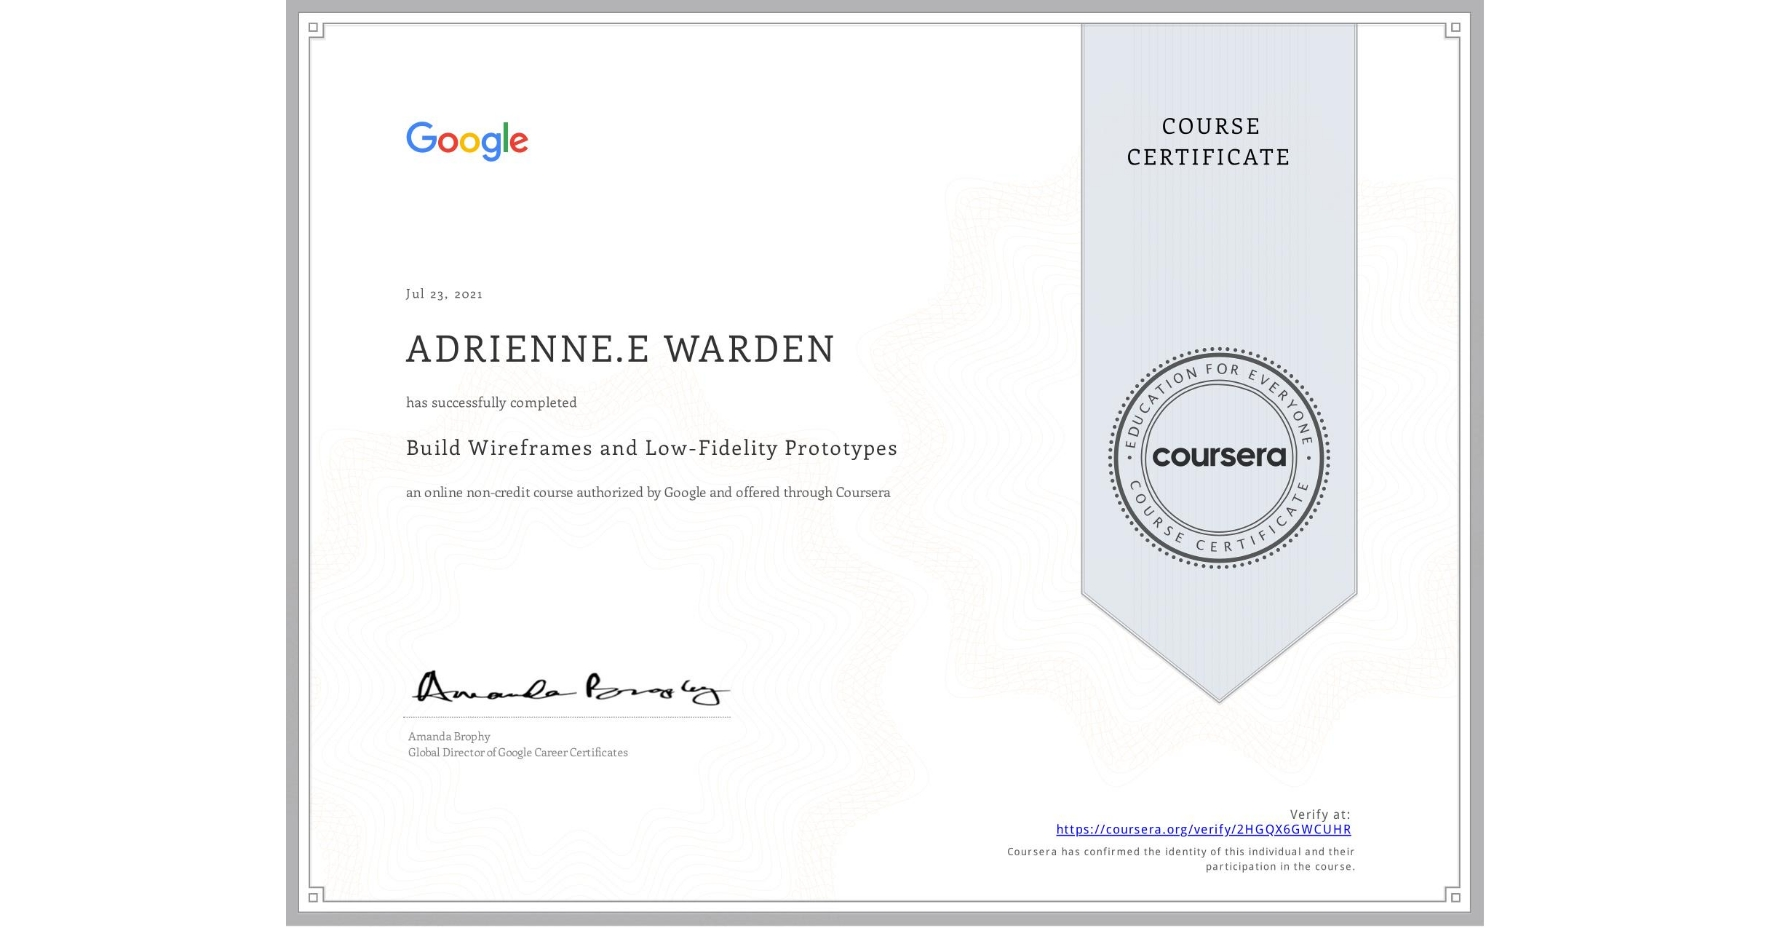 View certificate for ADRIENNE.E WARDEN, Build Wireframes and Low-Fidelity Prototypes, an online non-credit course authorized by Google and offered through Coursera